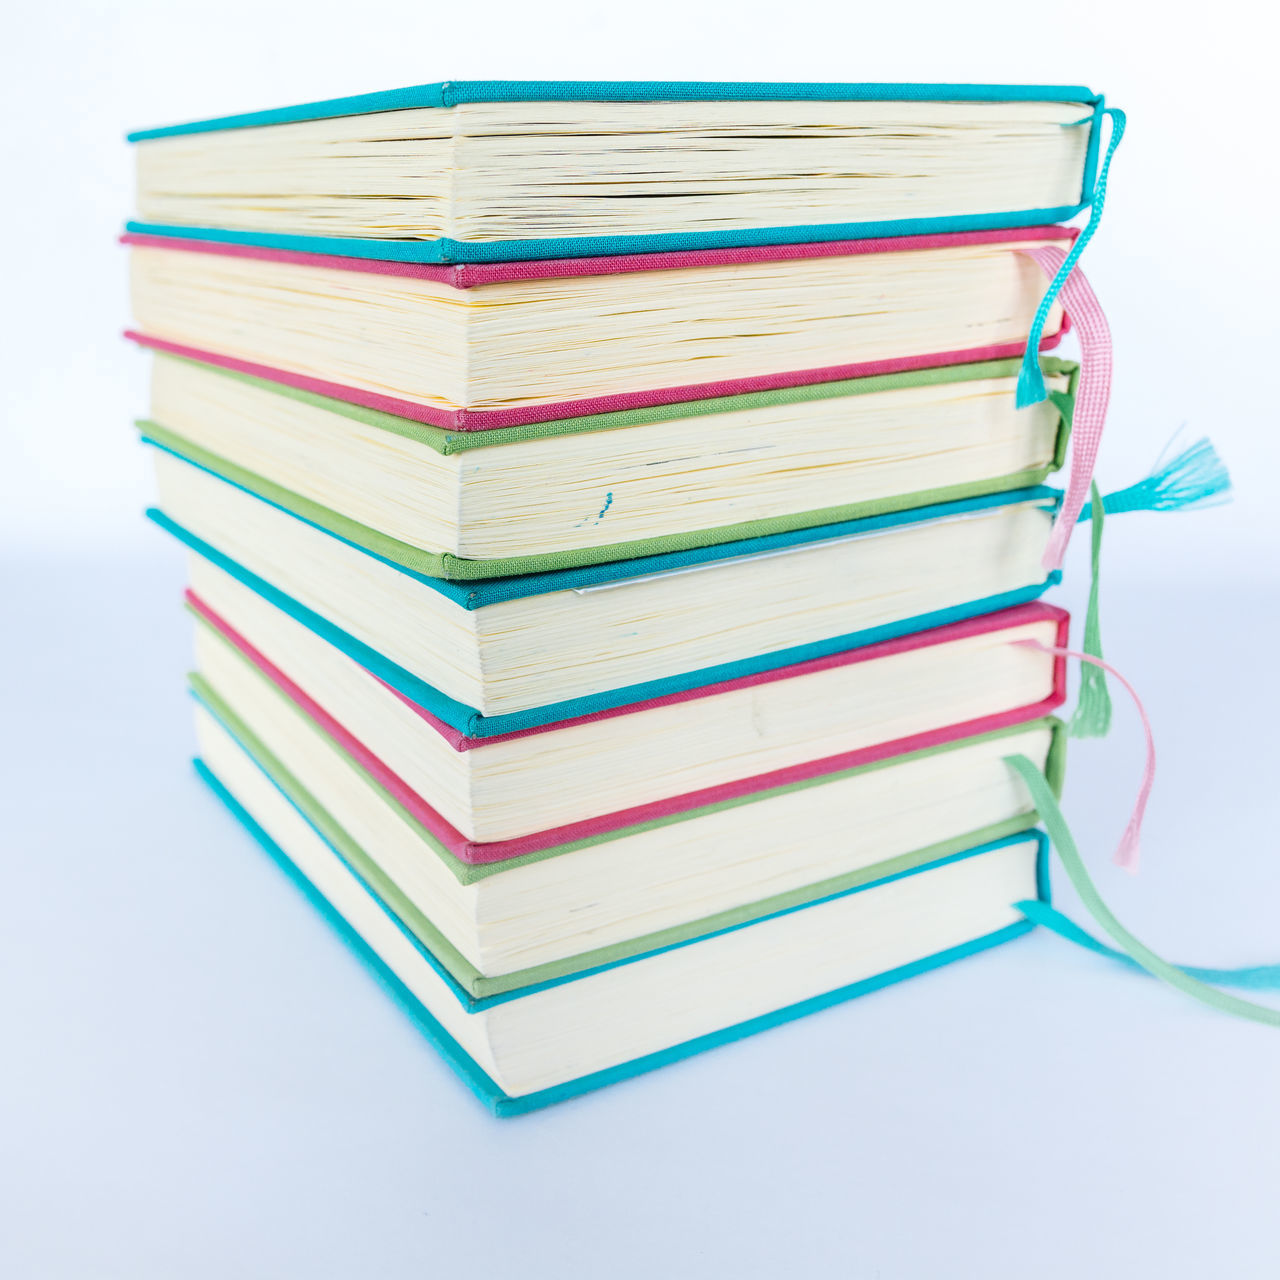 Colorful Books Blue Books Colorful Colors Cyan Day Education Educational Green Learning LearningEveryday No People Paper Pink Reading Reading Books Reading Time Stack Studio Shot Study Hard Study Time Studying Symbol White Background